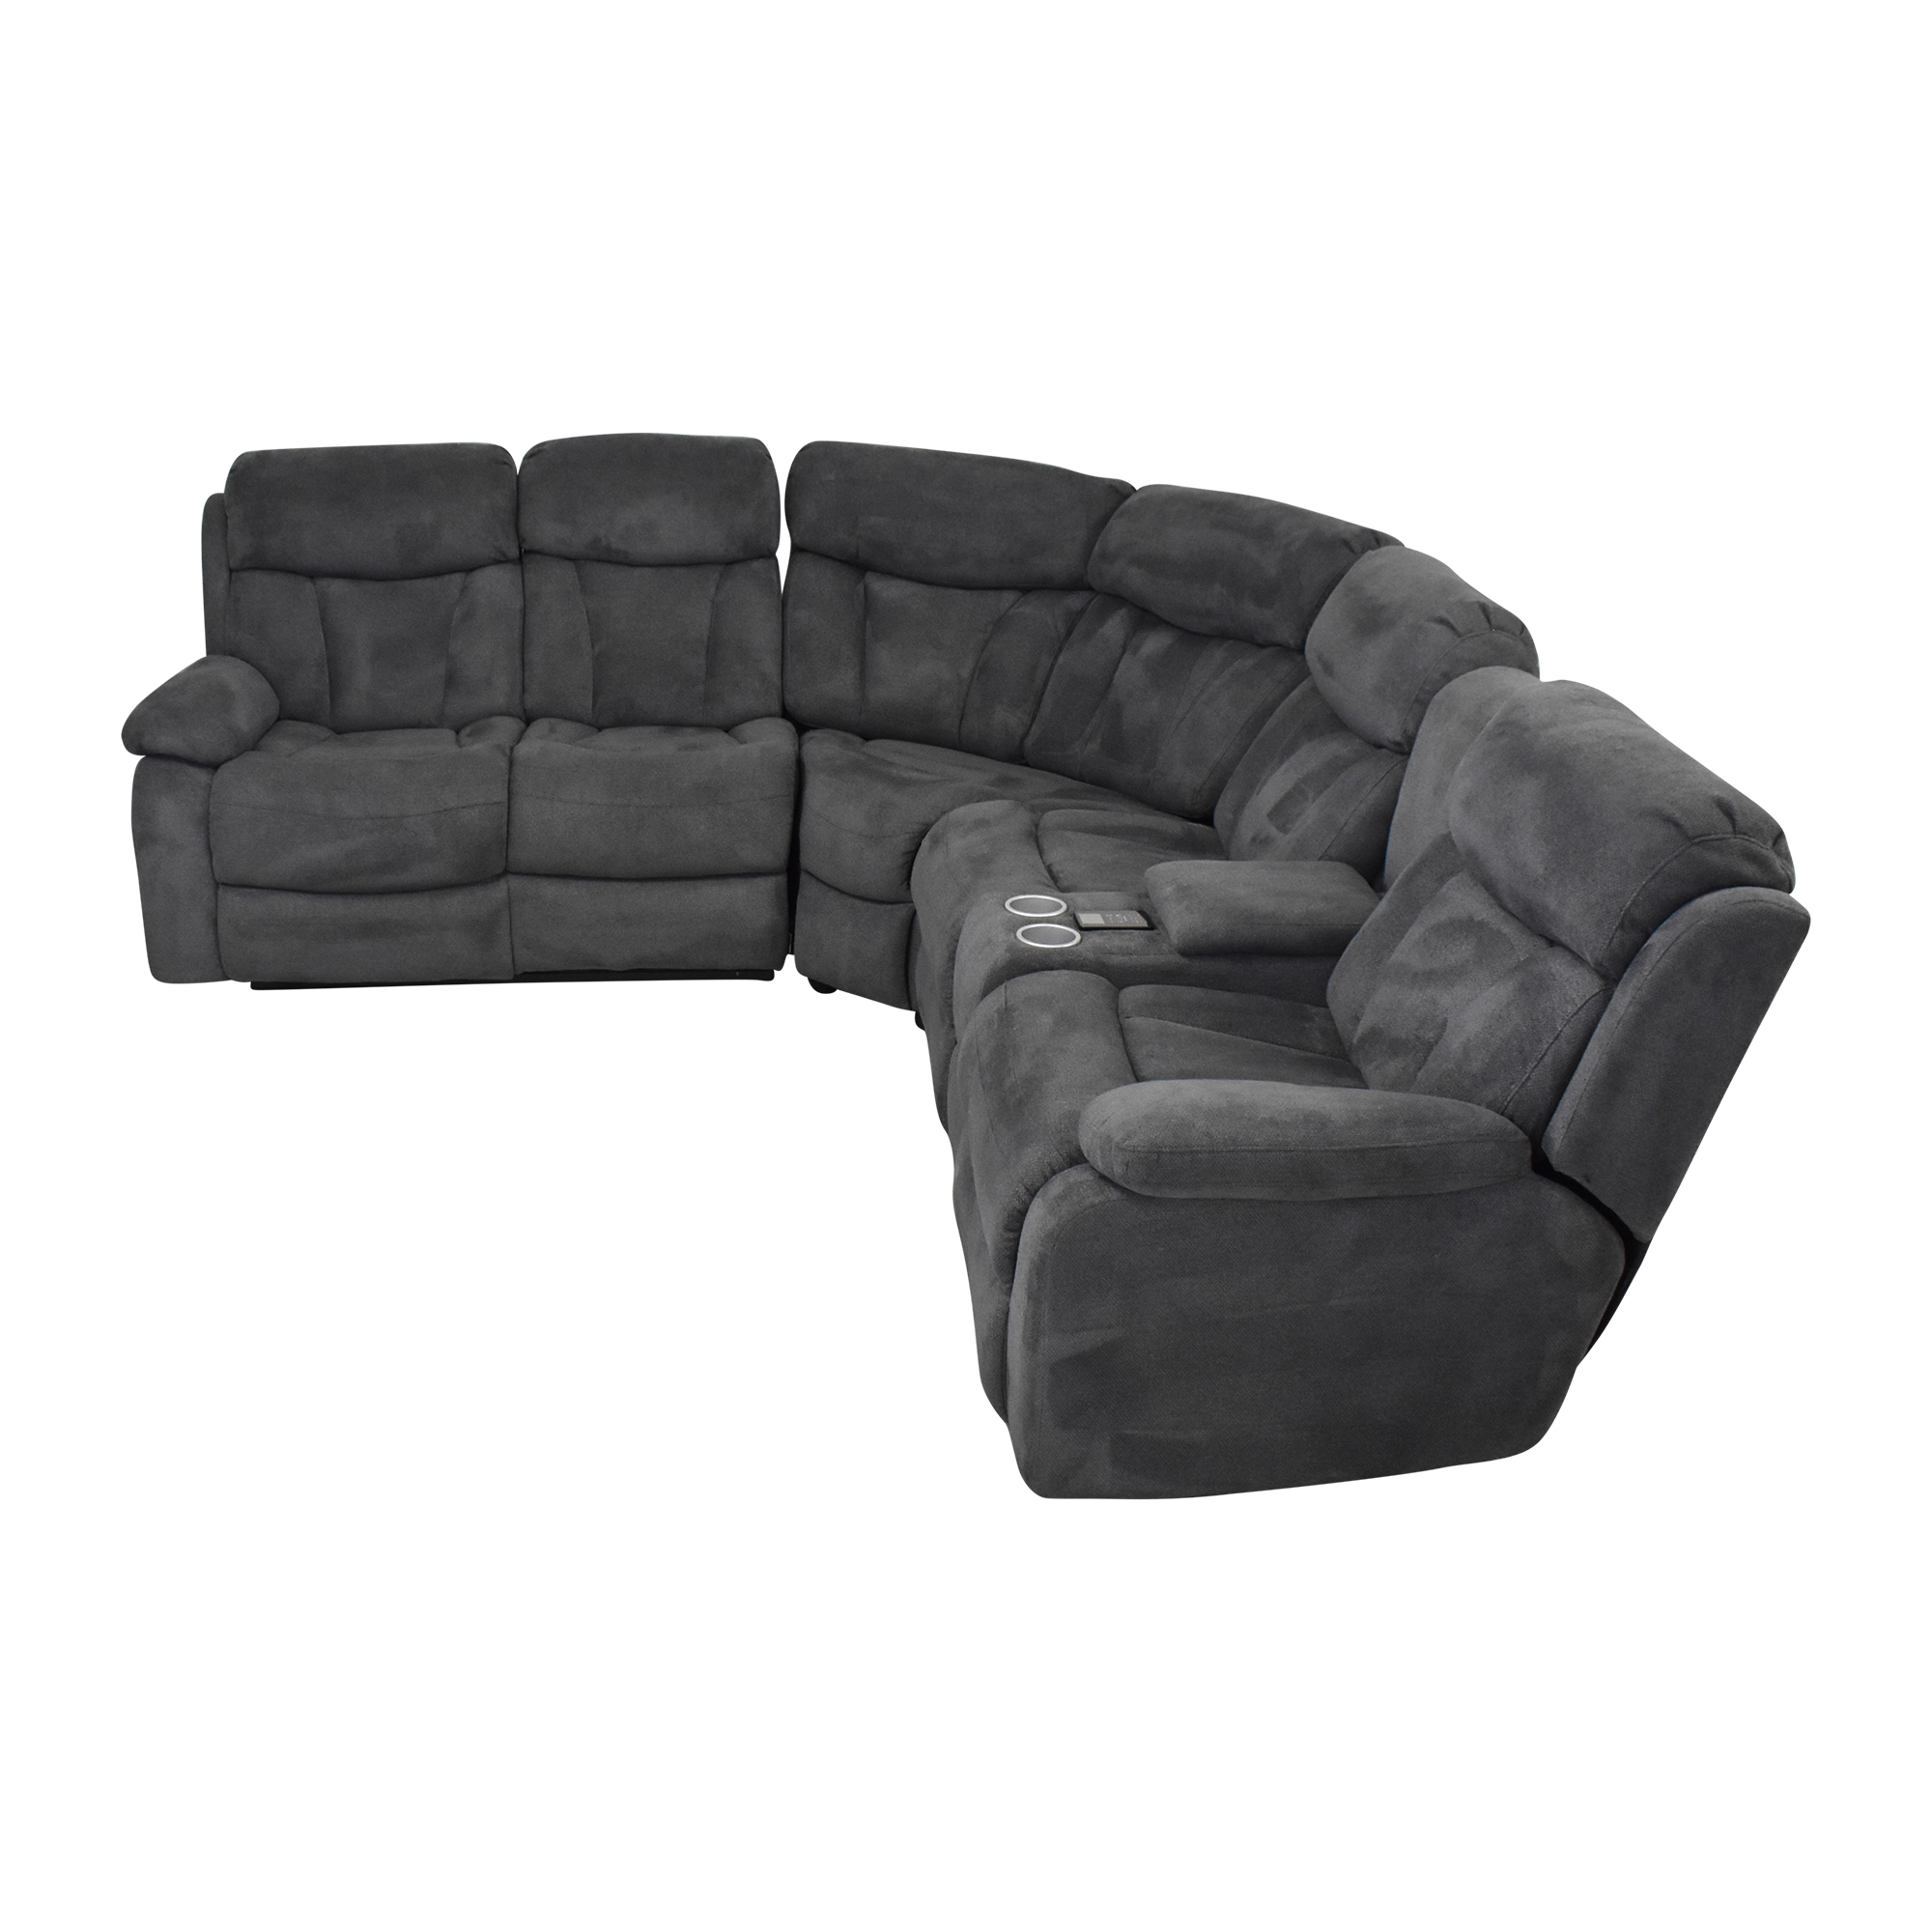 Raymour & Flanigan Raymour & Flanigan Connell Reclining Sectional Sofa nyc